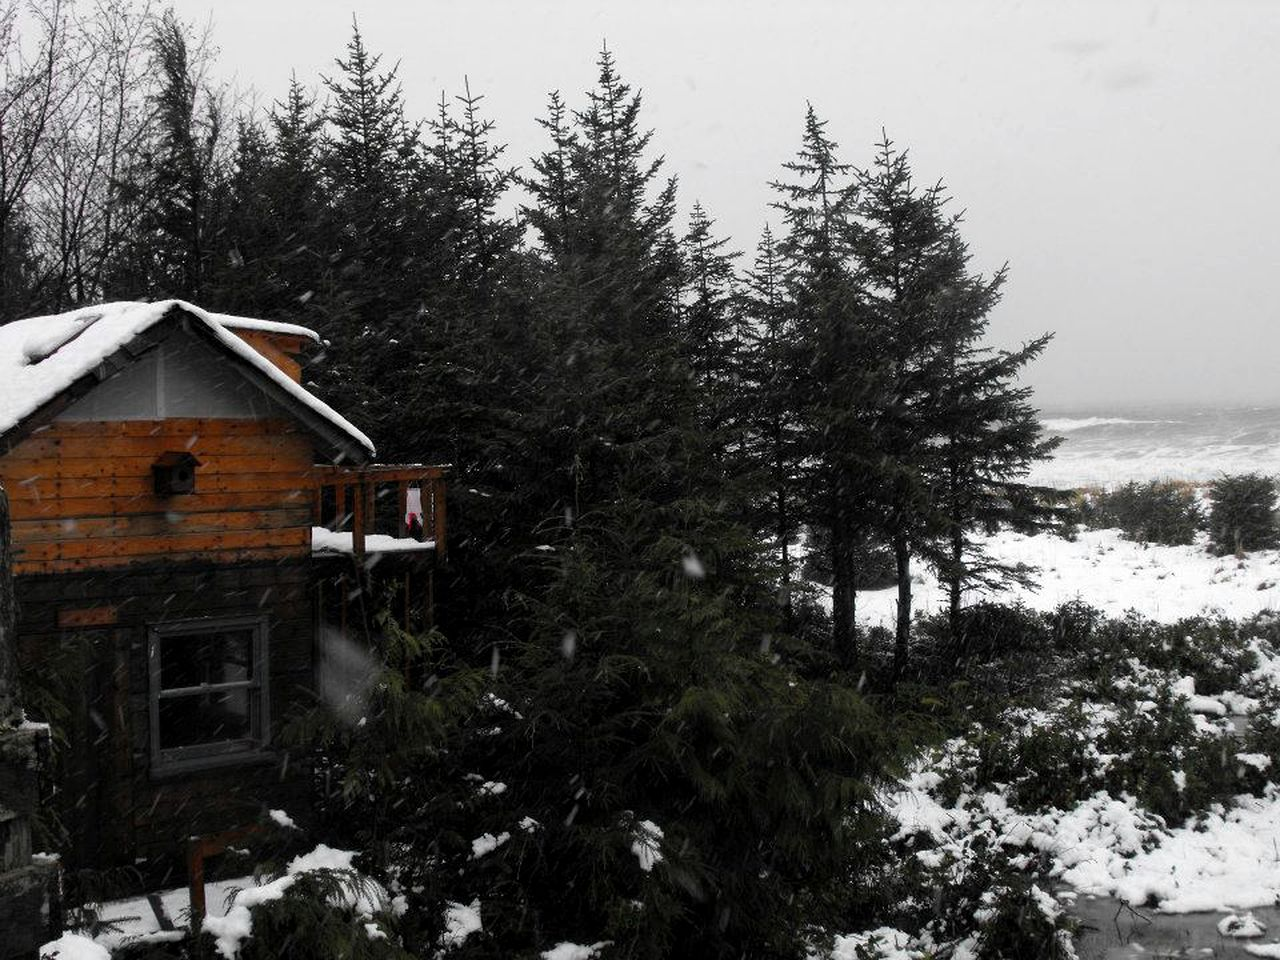 Snow falls over this luxury tree house: Masset, BC